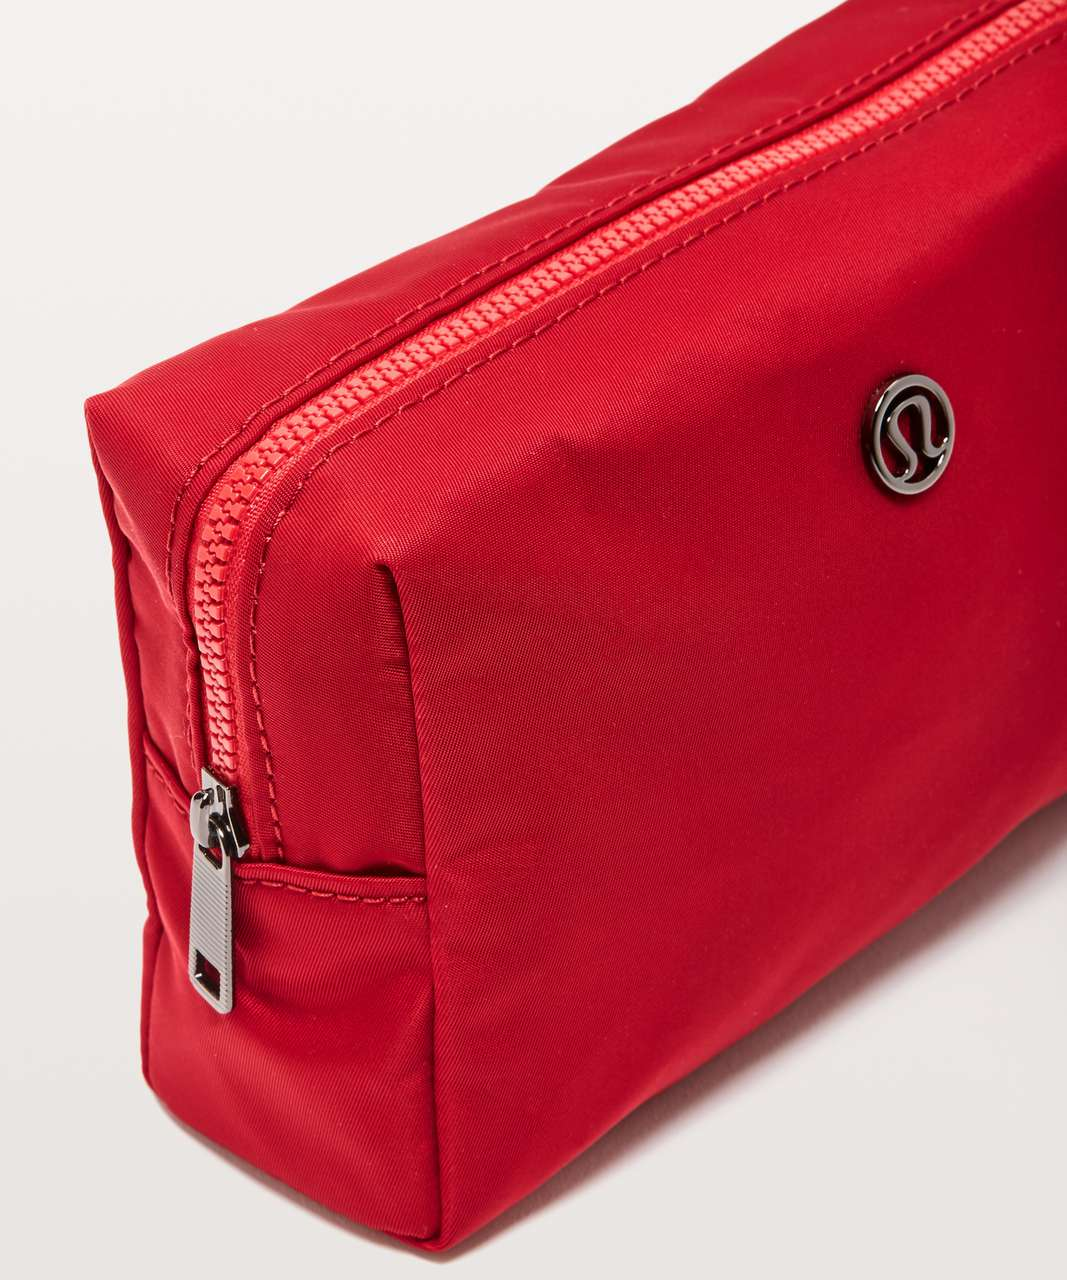 Lululemon All Your Small Things Pouch *Mini 2L - Dark Red (First Release)